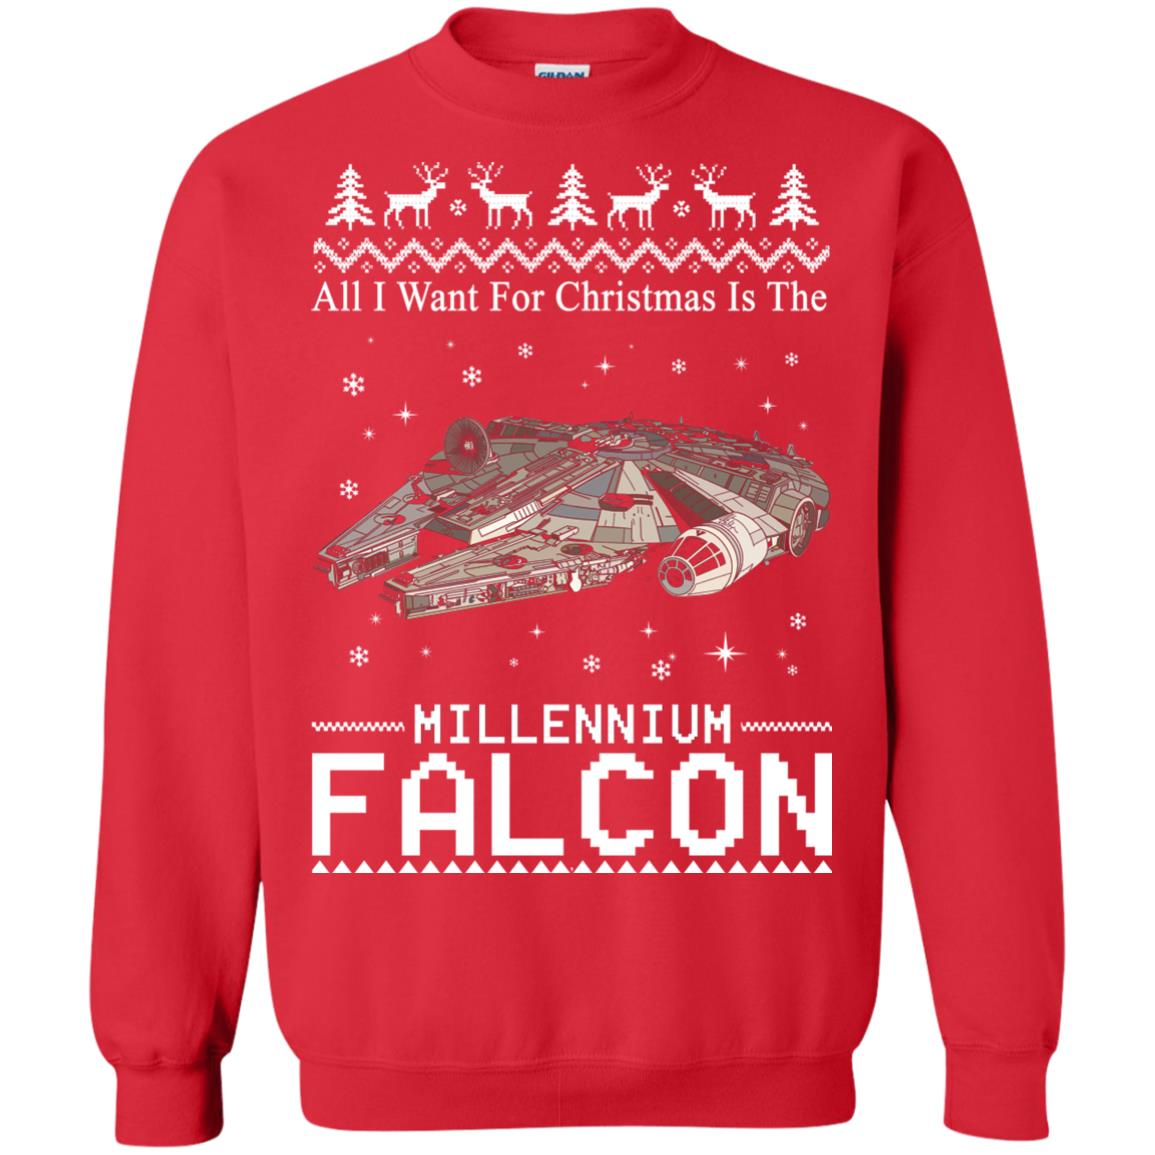 image 2140 - All I Want For Christmas is The Millennium Falcon Sweater, Ugly Sweatshirt